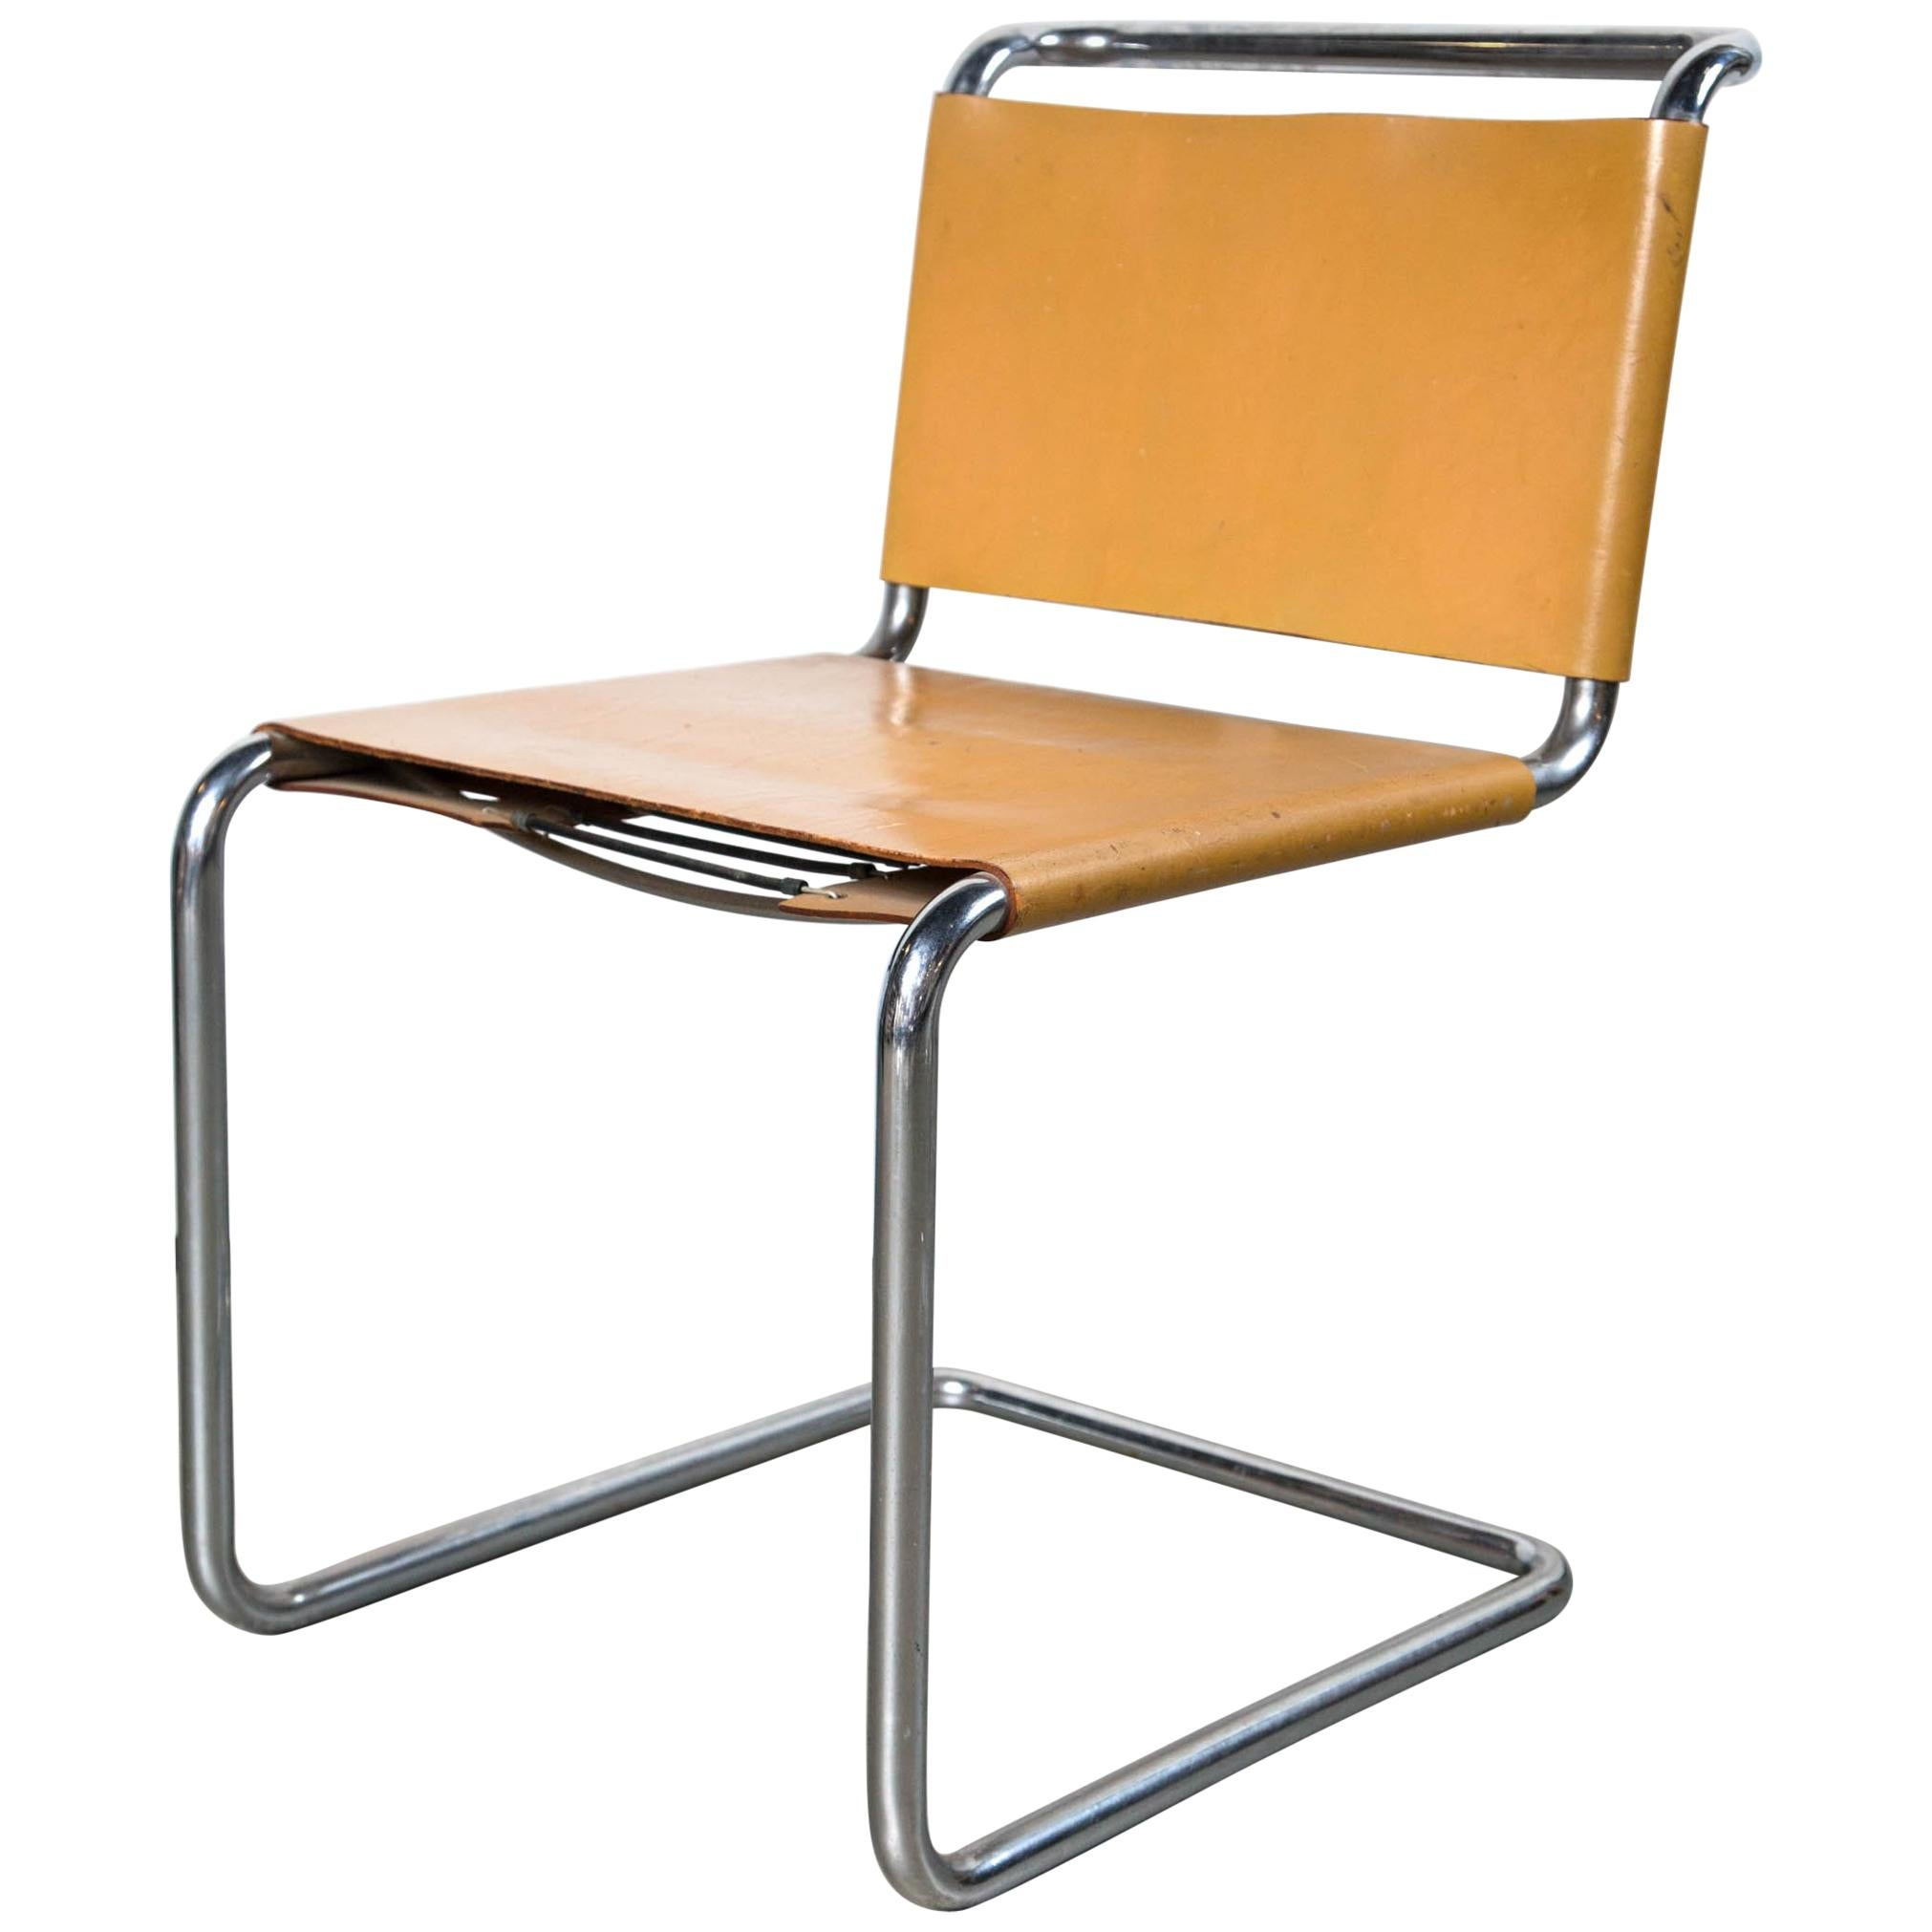 breuer chairs for sale academy sports lounge vintage leather marcel chrome at 1stdibs